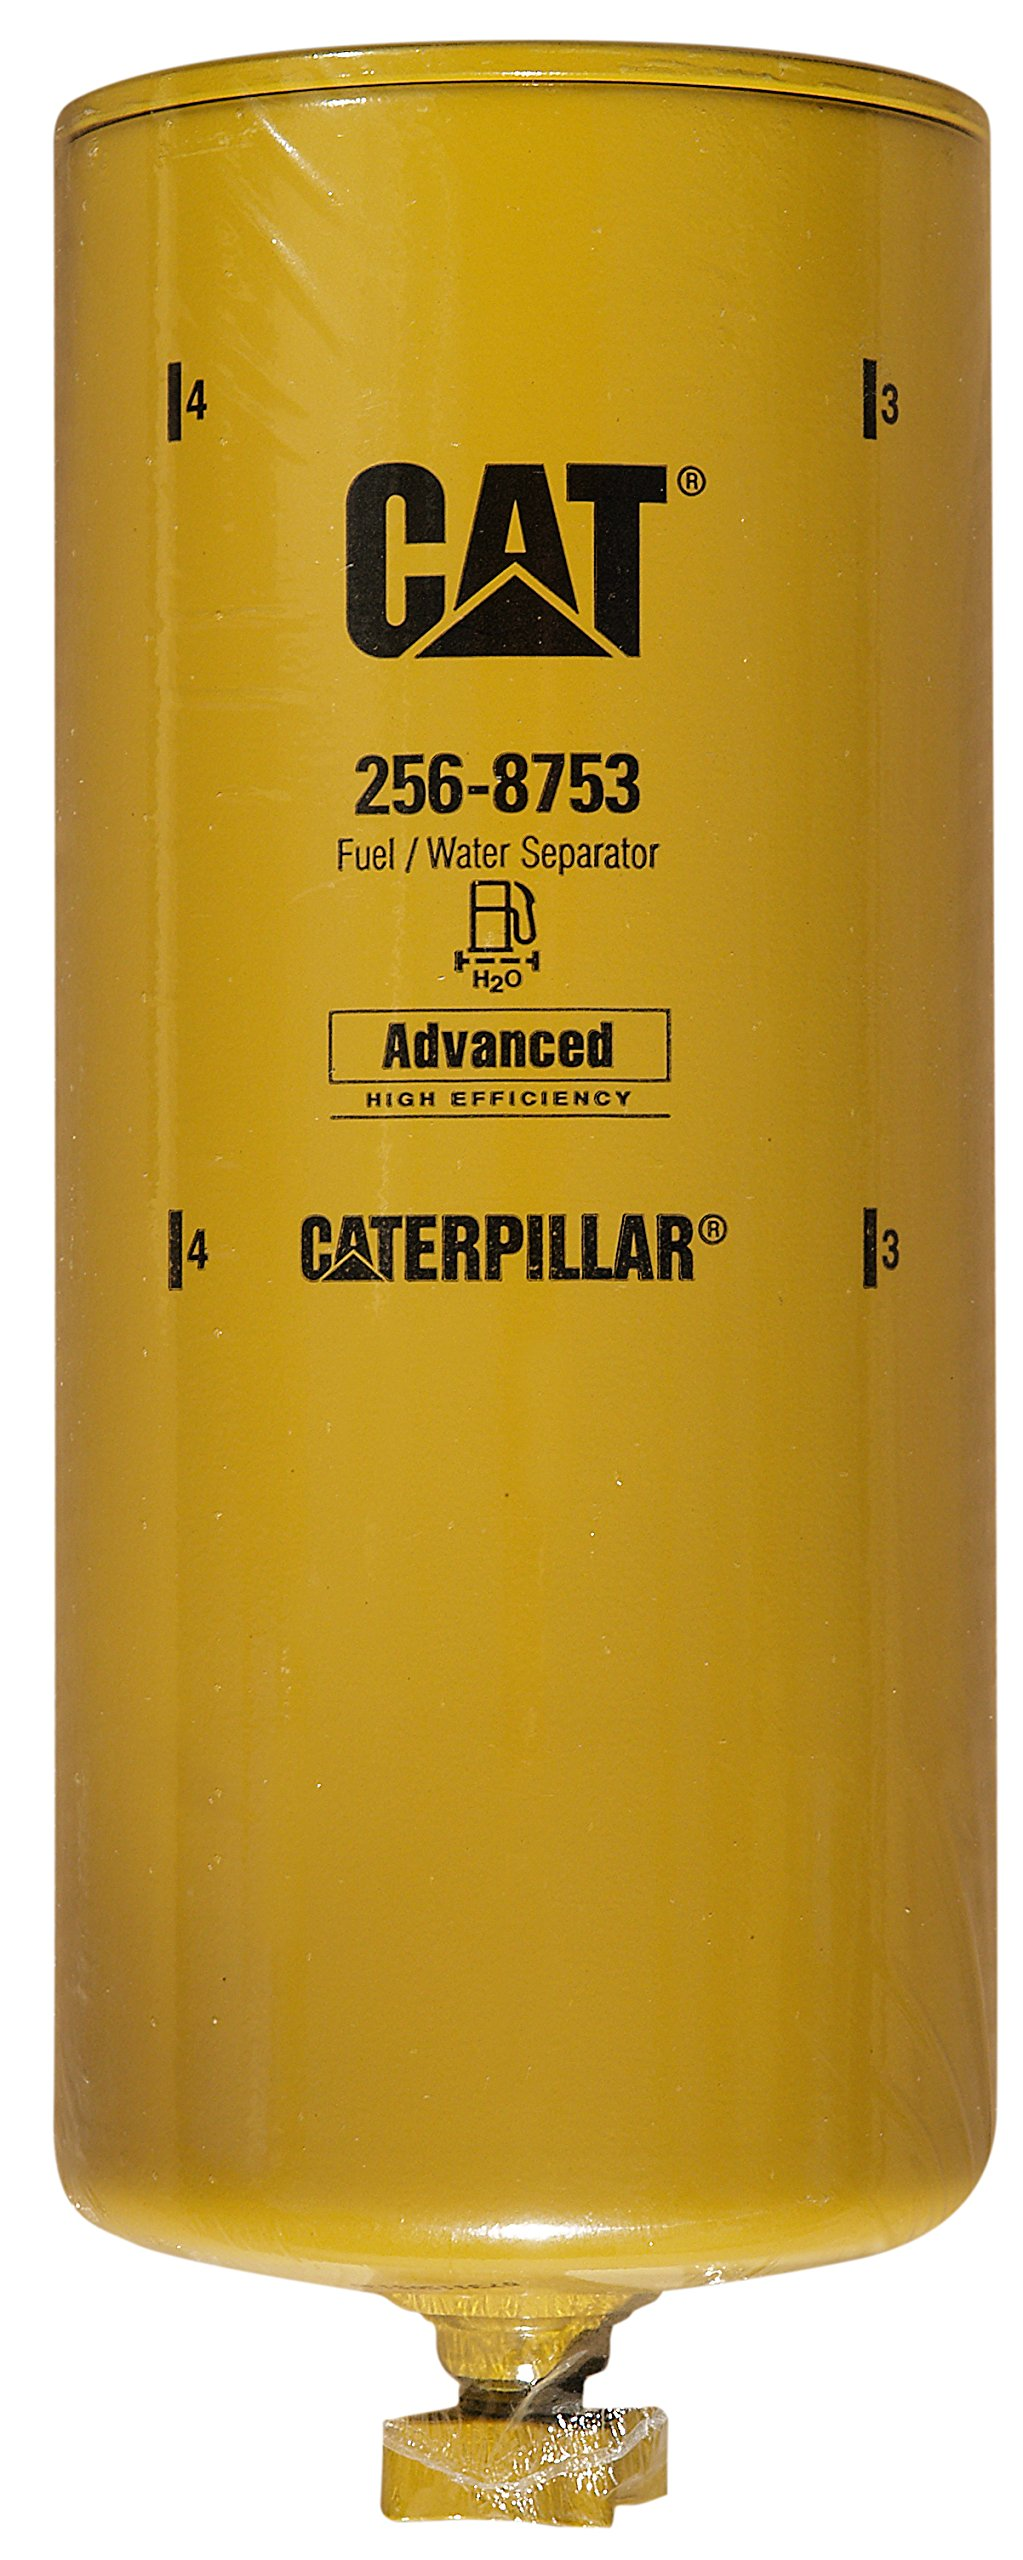 Caterpillar 2568753 Fuel/Water Separator by Caterpillar